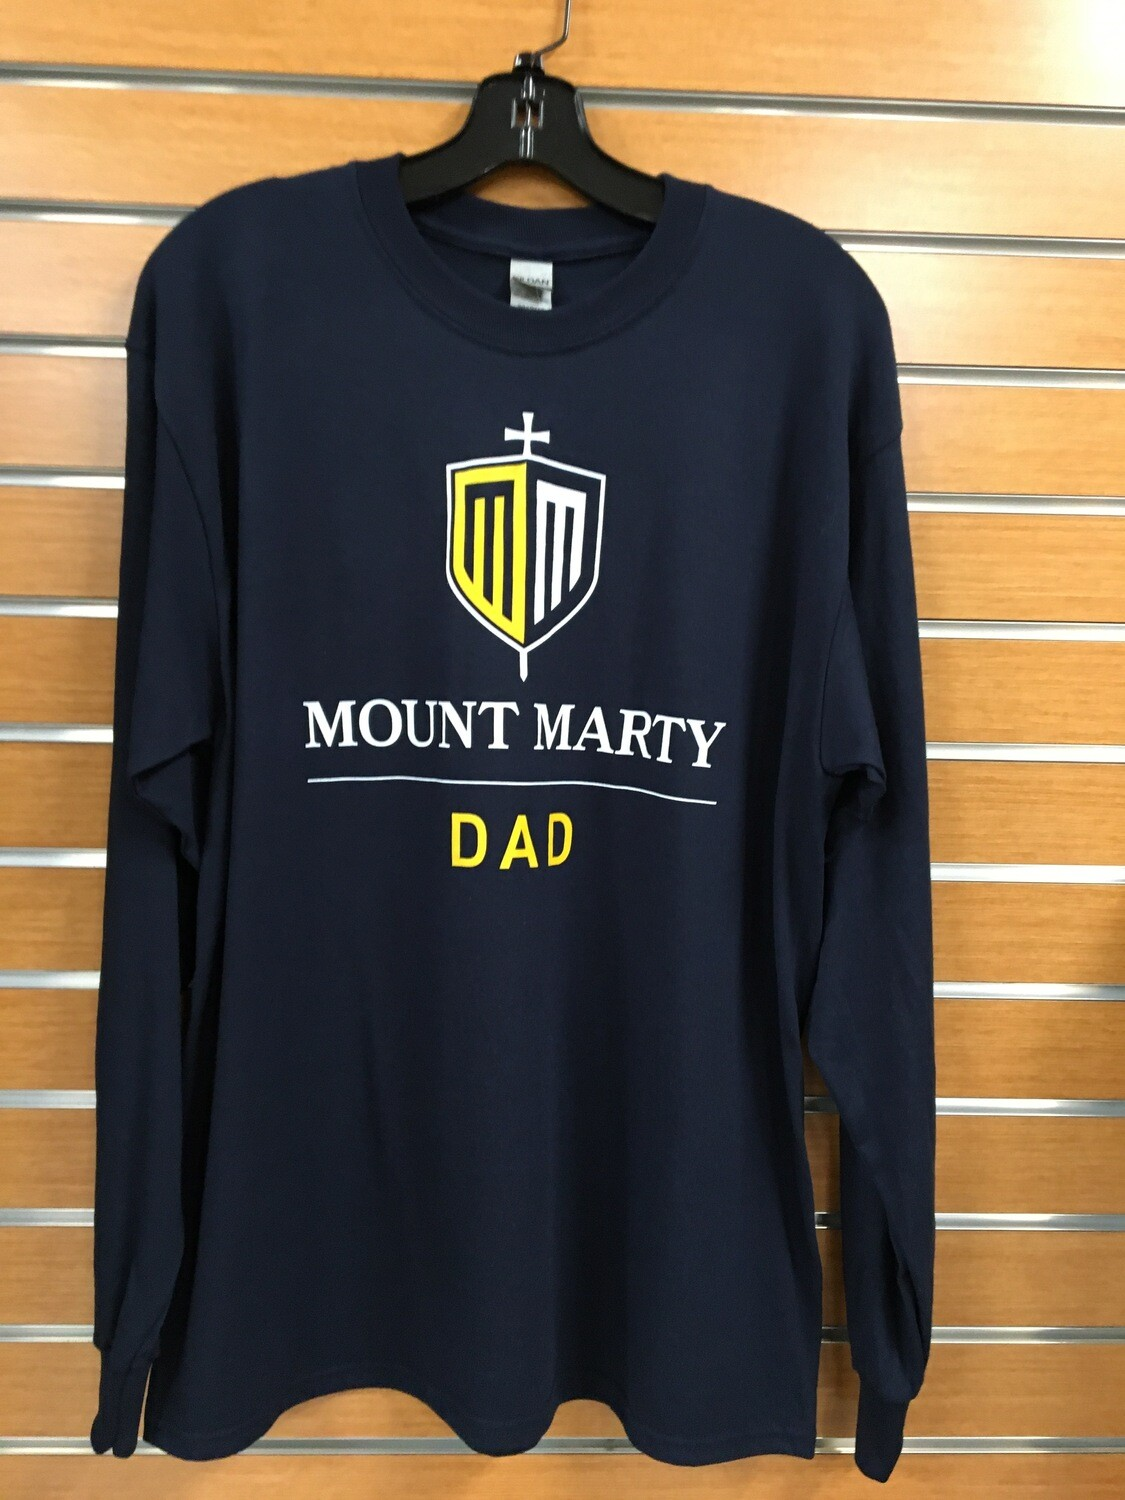 Mount Marty Dad LS T shirt